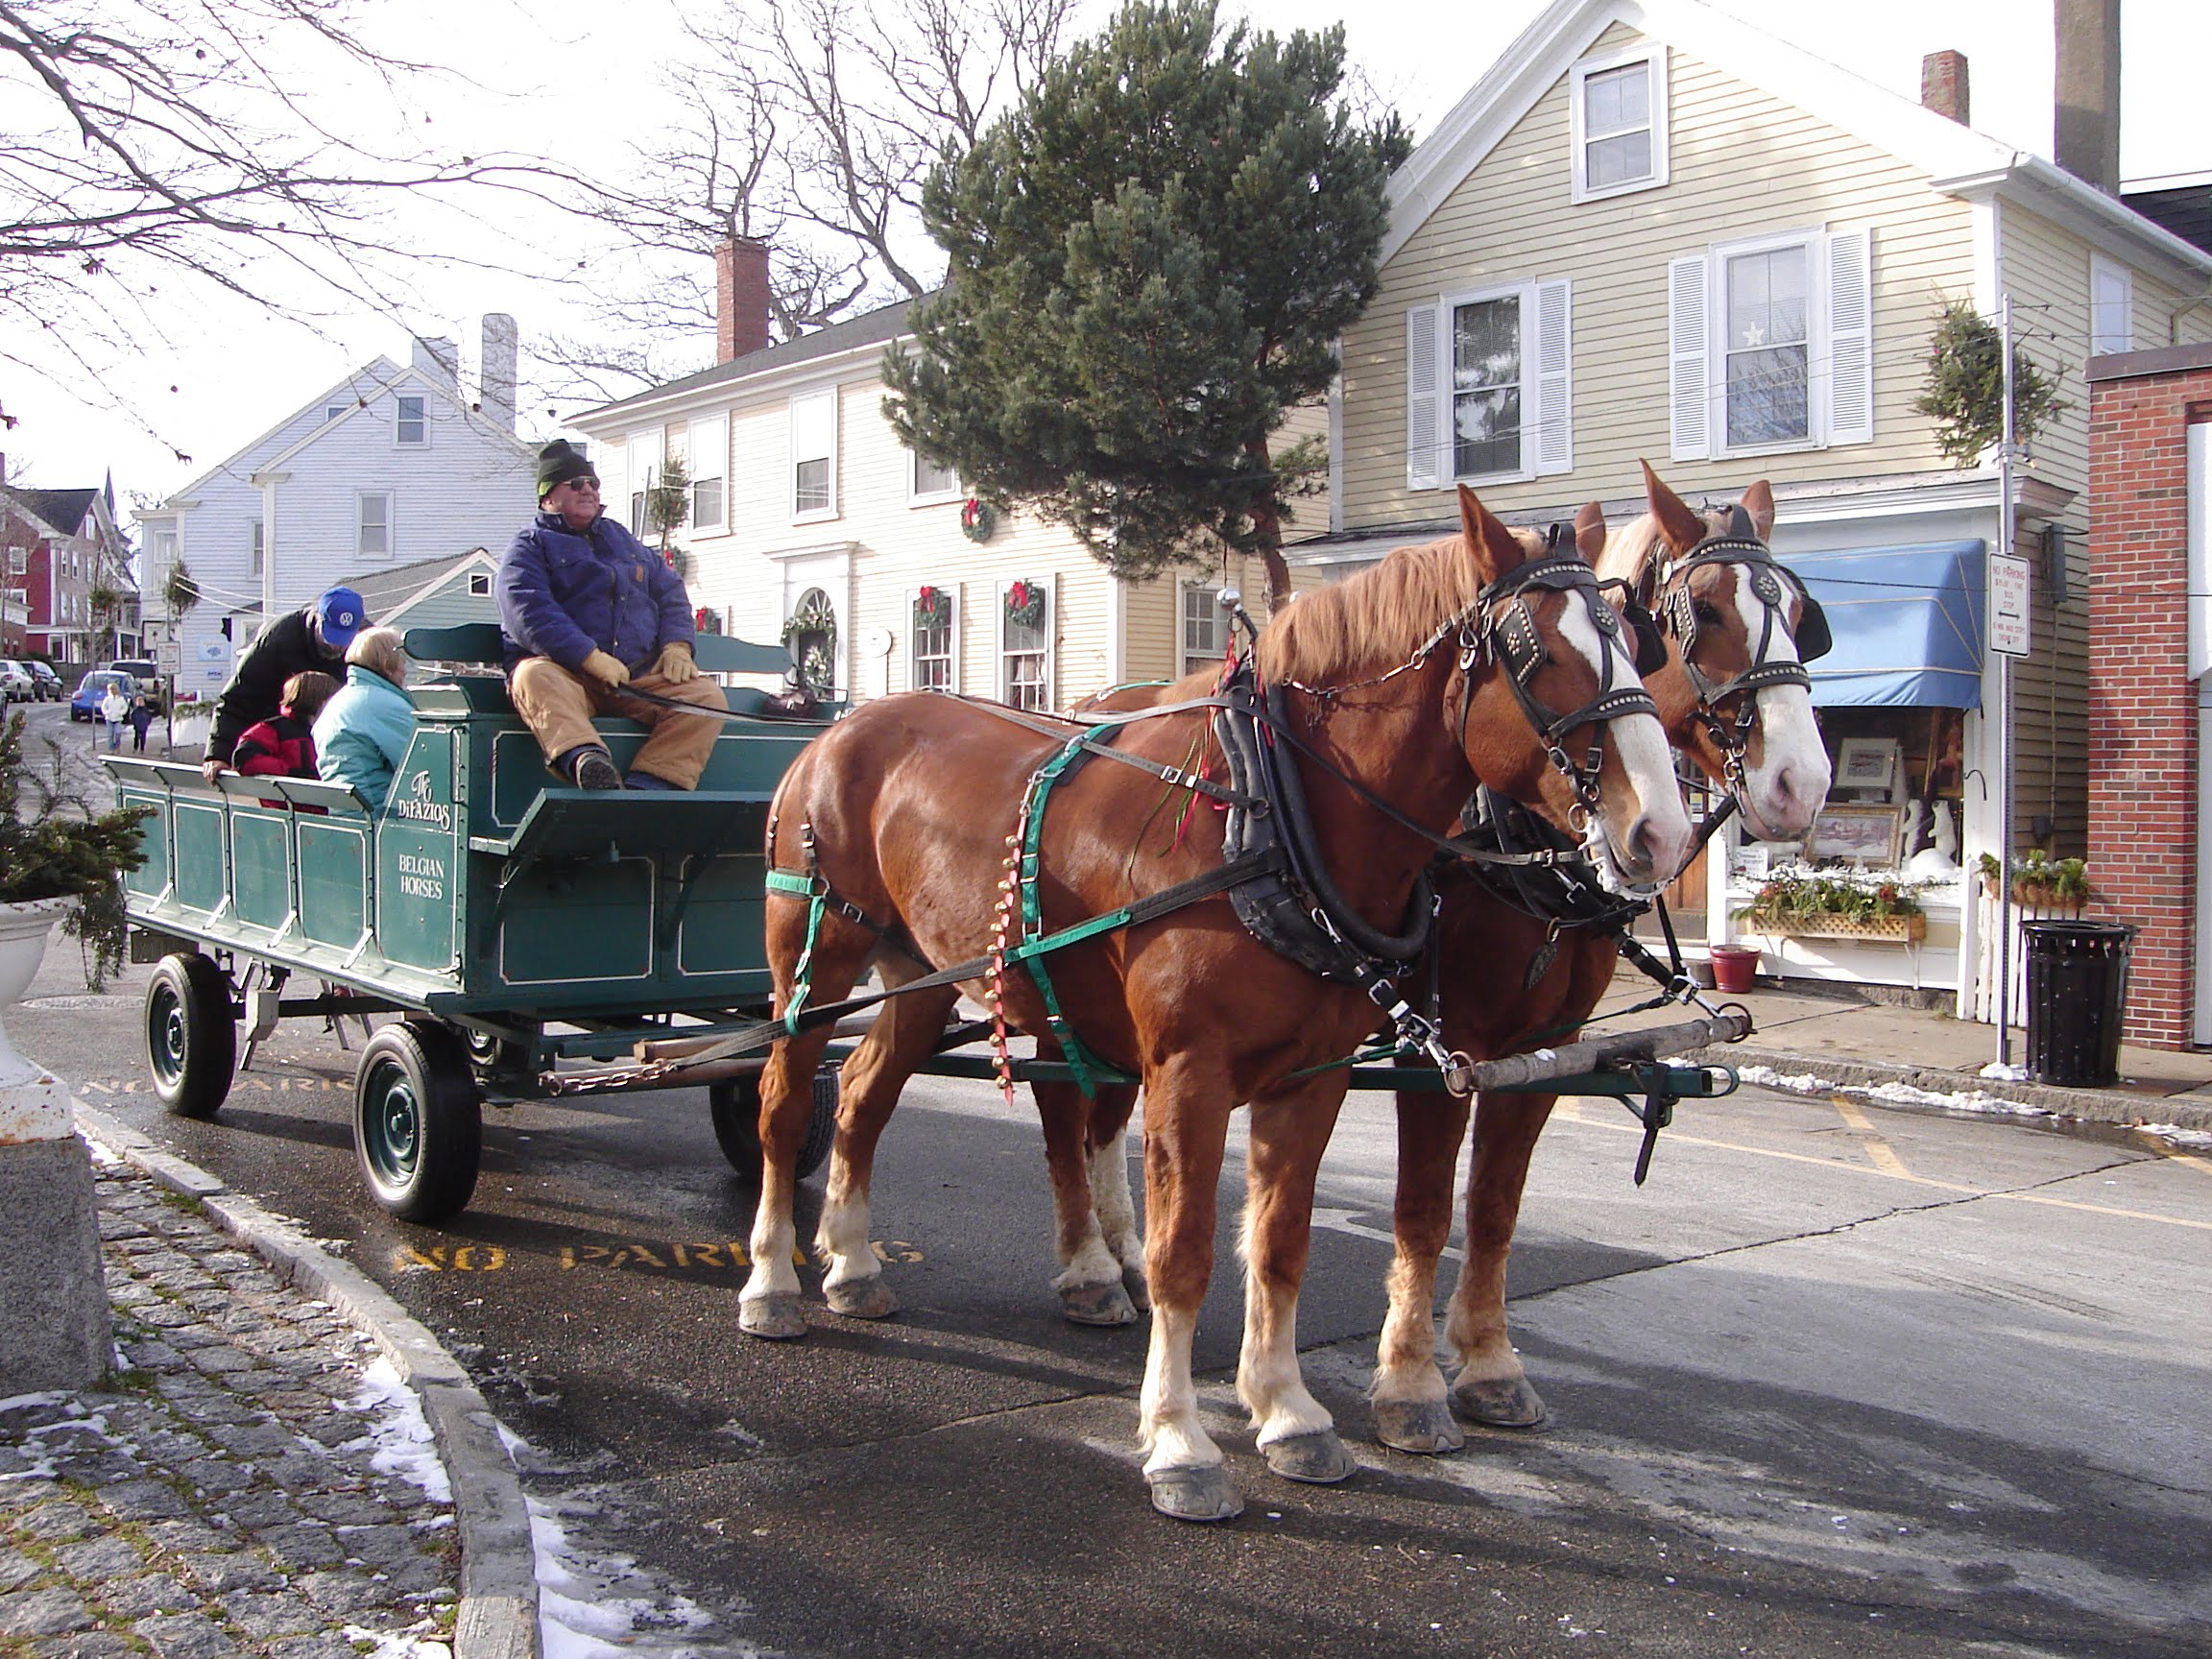 Christmas In Rockport Ma 2020 Horse Drawn Holiday Carriage Rides | Rockport, MA USA